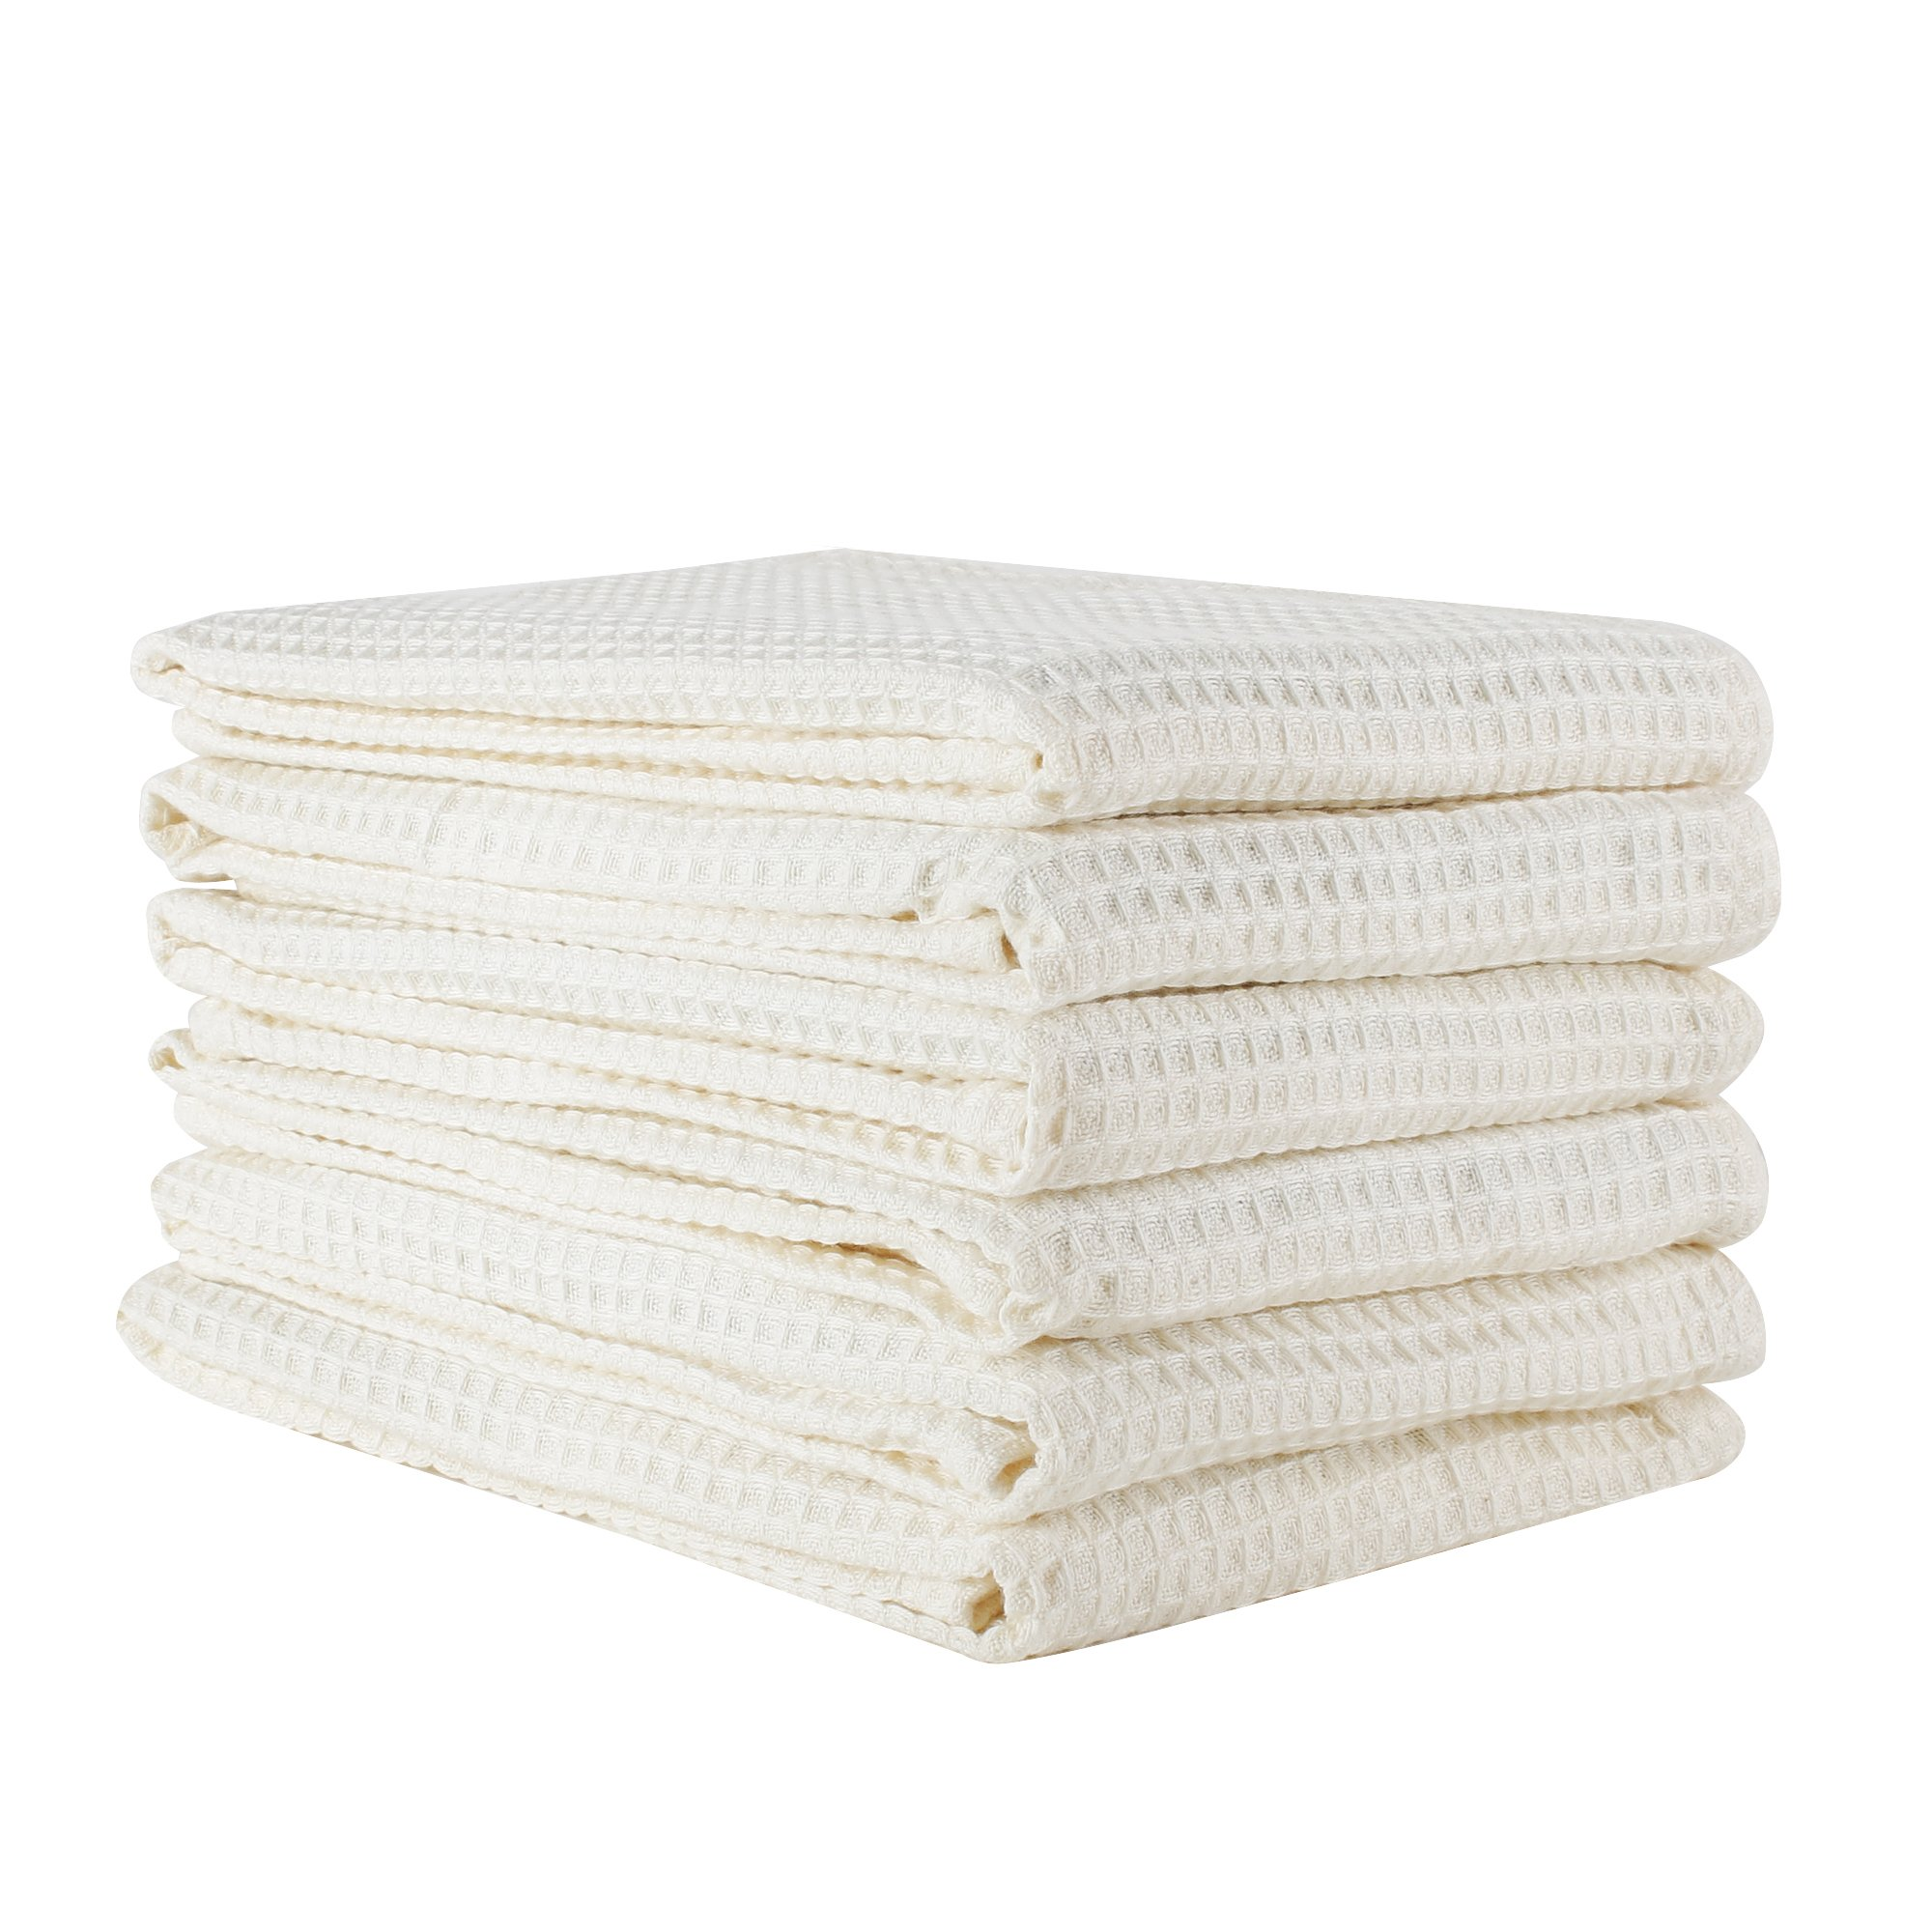 Linen and Towel 6 Pack Premium Cotton Kitchen Dish Towel, 18 inch x 28 inch, Ring Spun Cotton in Classic Waffle Weave, Cream, Multi-purpose Kitchen Napkin, Dish Towels